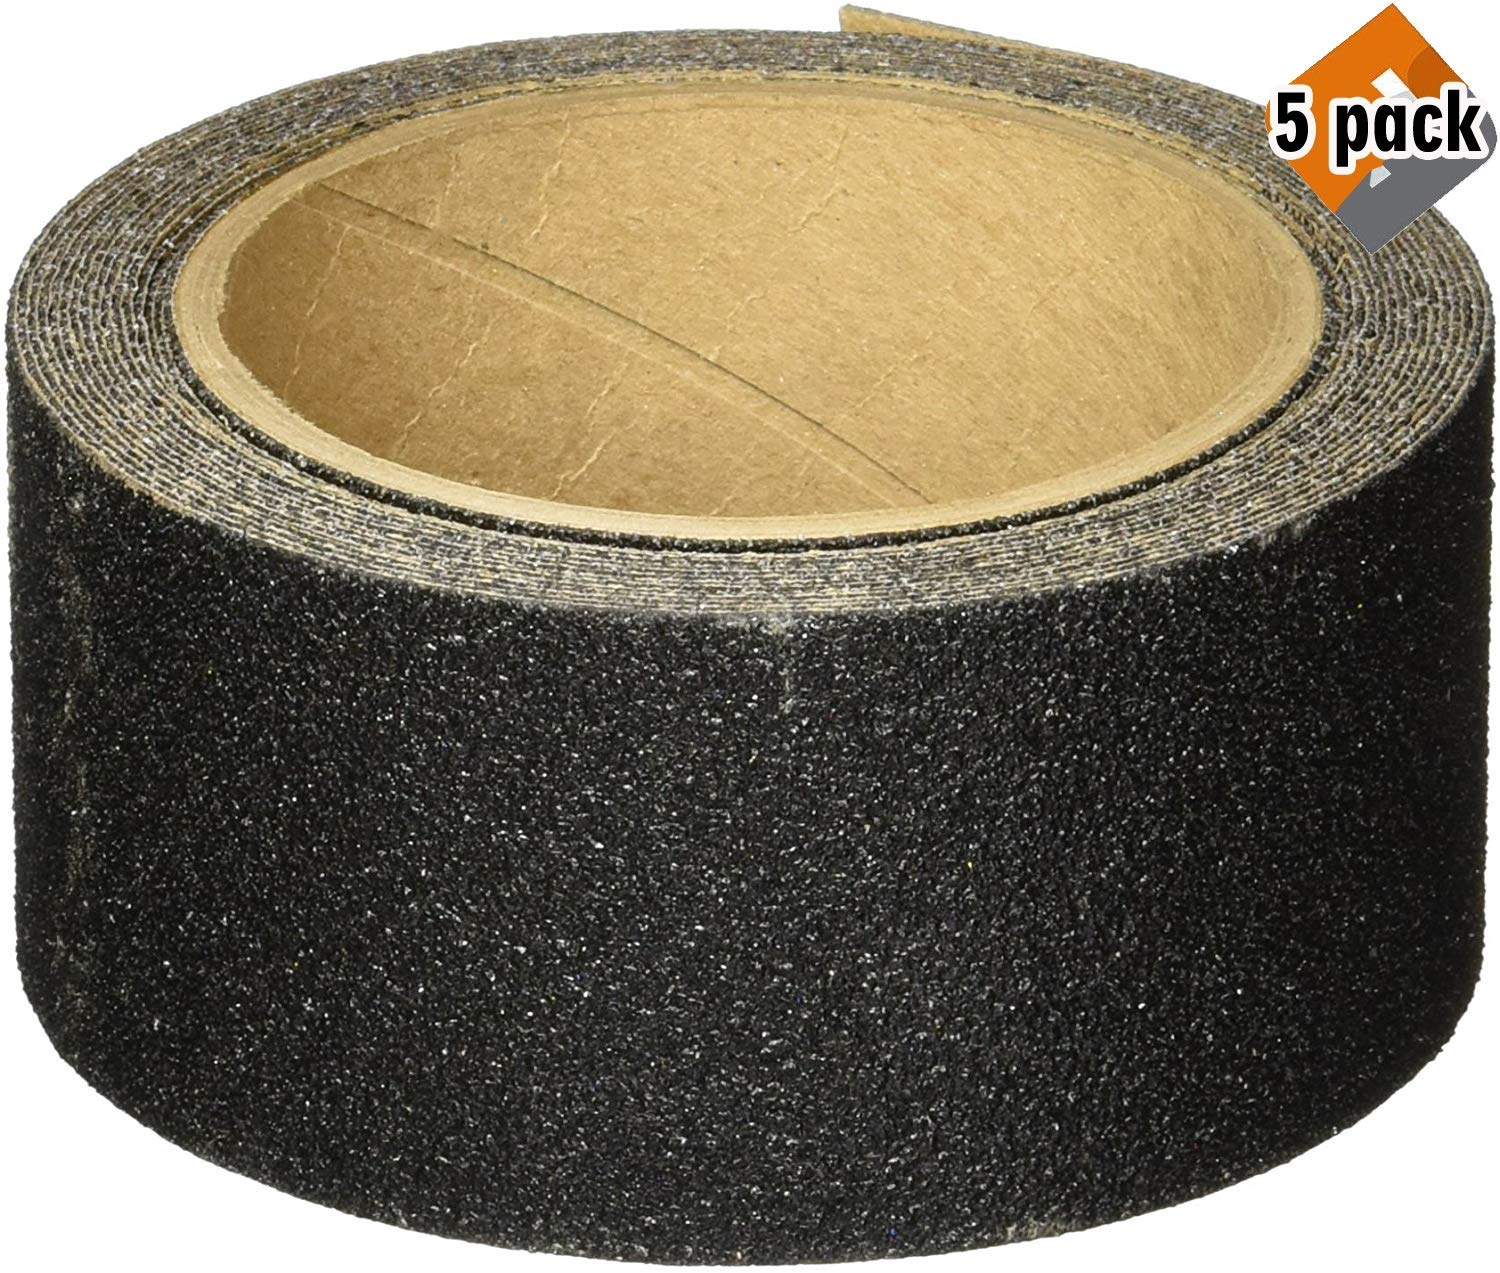 3M Safety-Walk Slip Resistant Tread, Black, 2-Inch by 180-Inch Roll, 7635NA - 5 Pack by 3M SAFETY